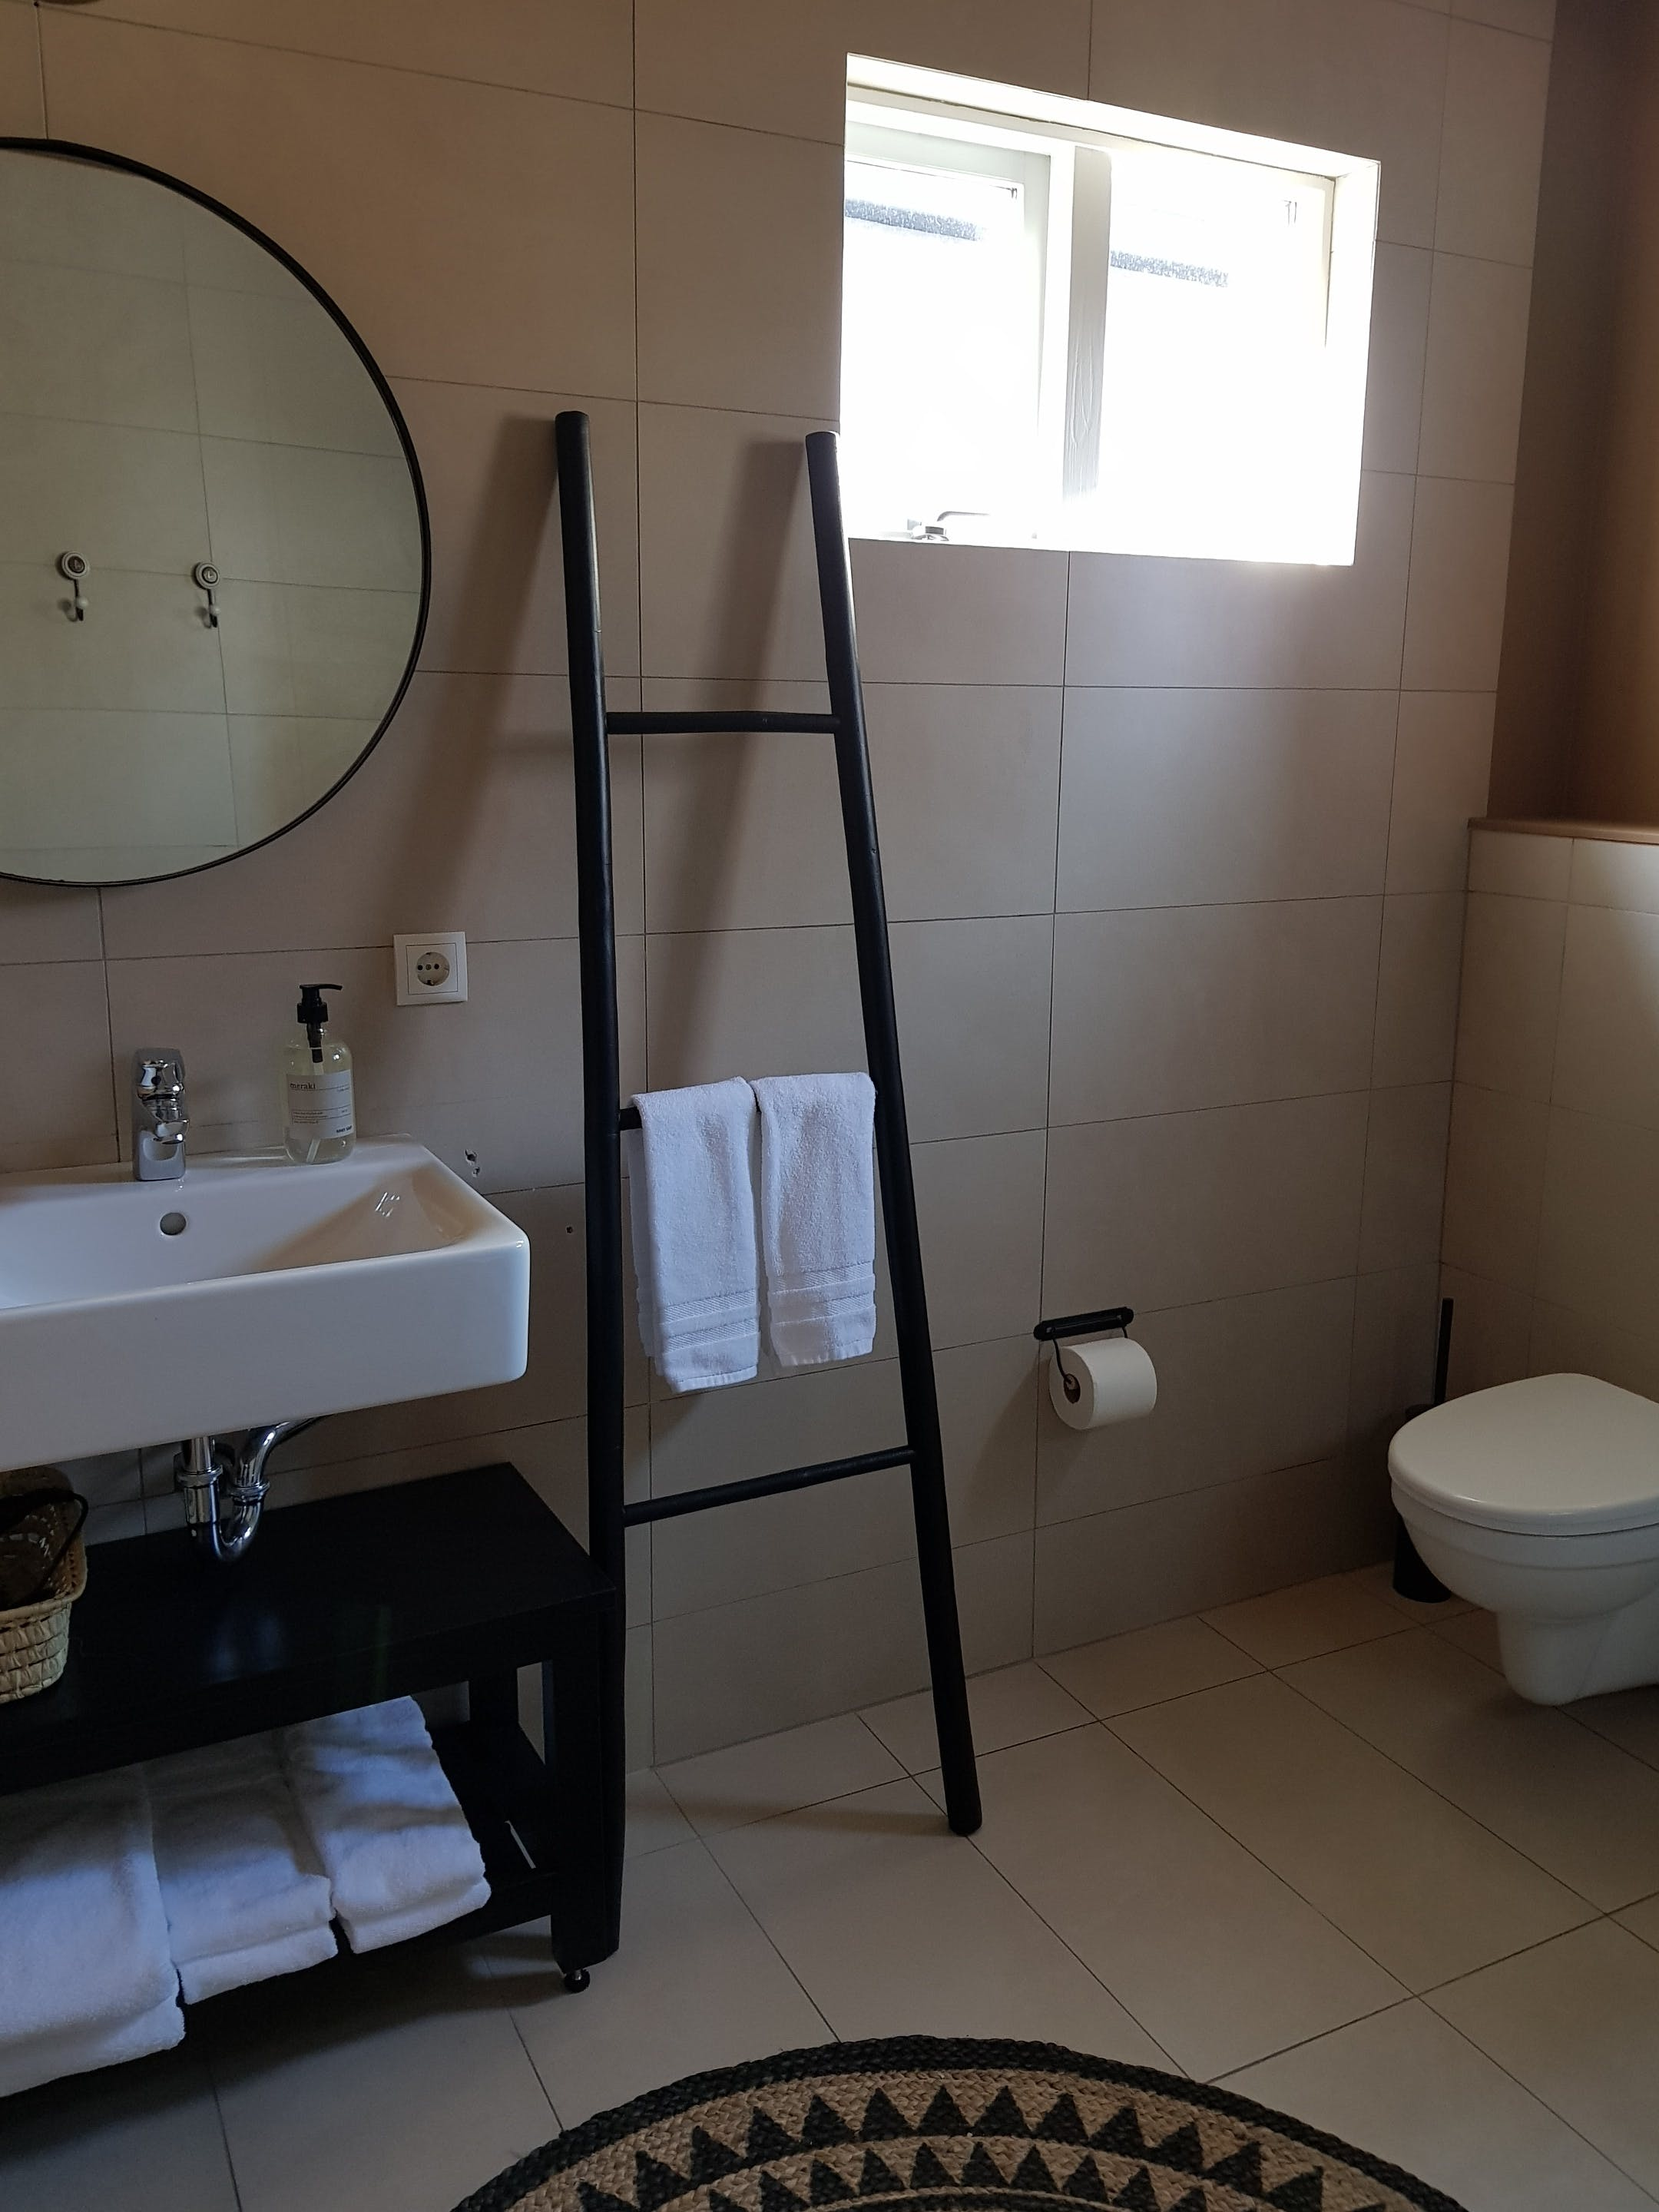 INNI 4 - Bathroom